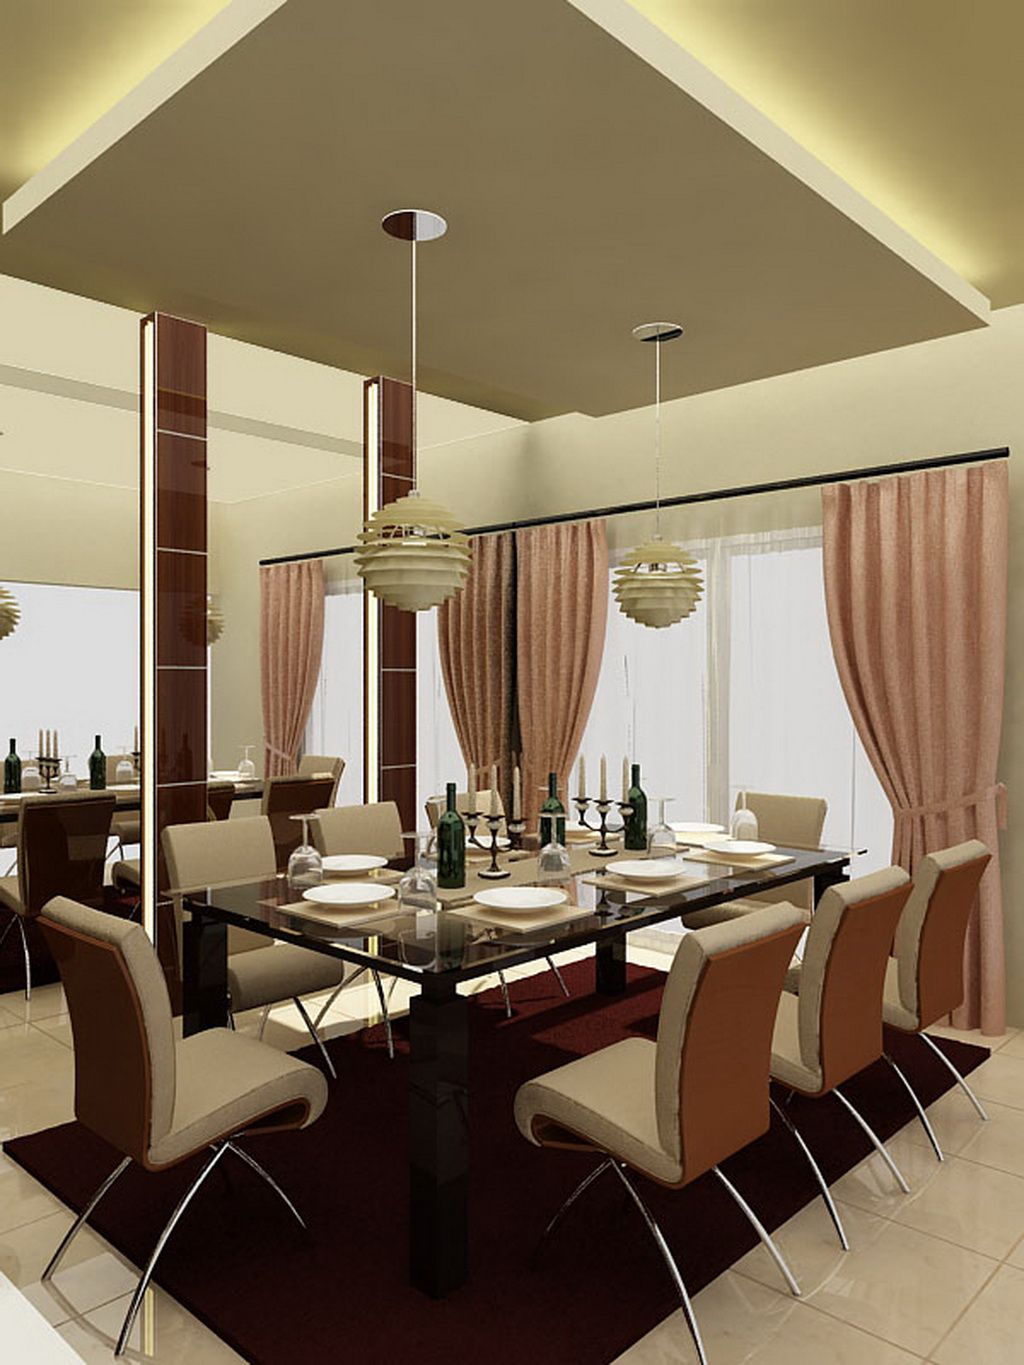 Image Result For Dropped Ceiling Over Dining Area Ben Drop